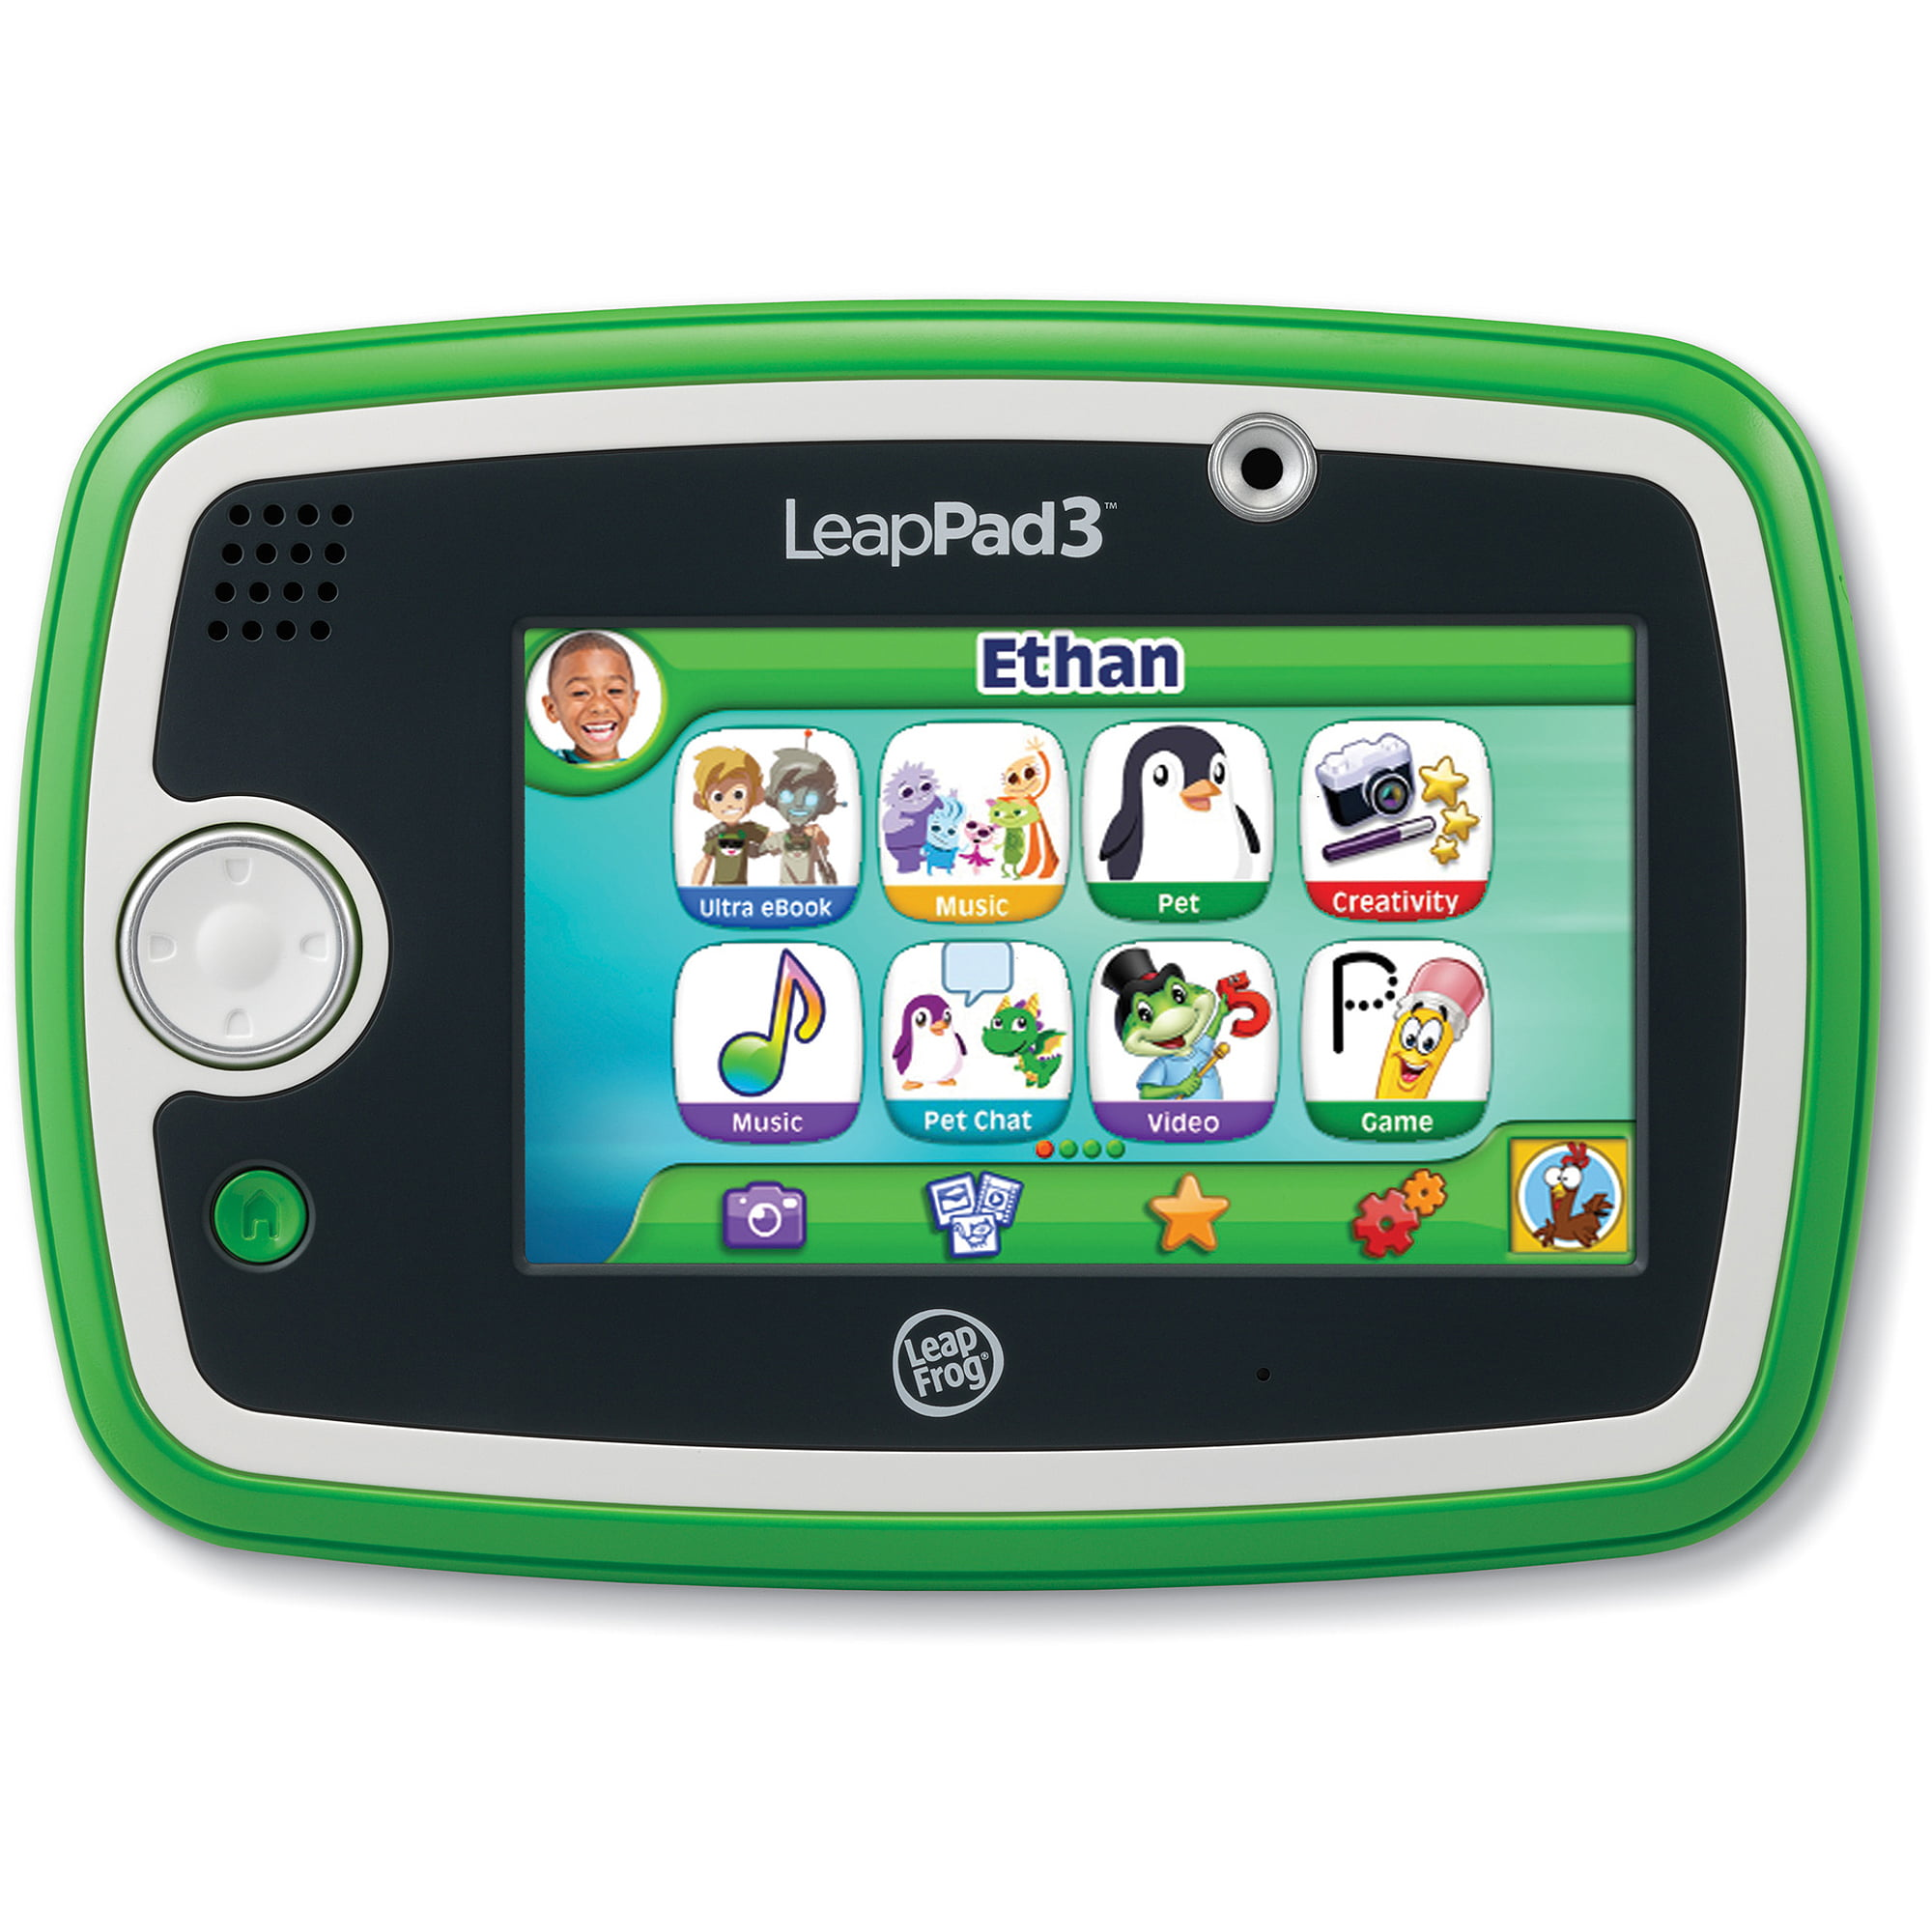 LeapFrog LeapPad3 Kids' Learning Tablet with Wi-Fi, Green or Pink by LeapFrog